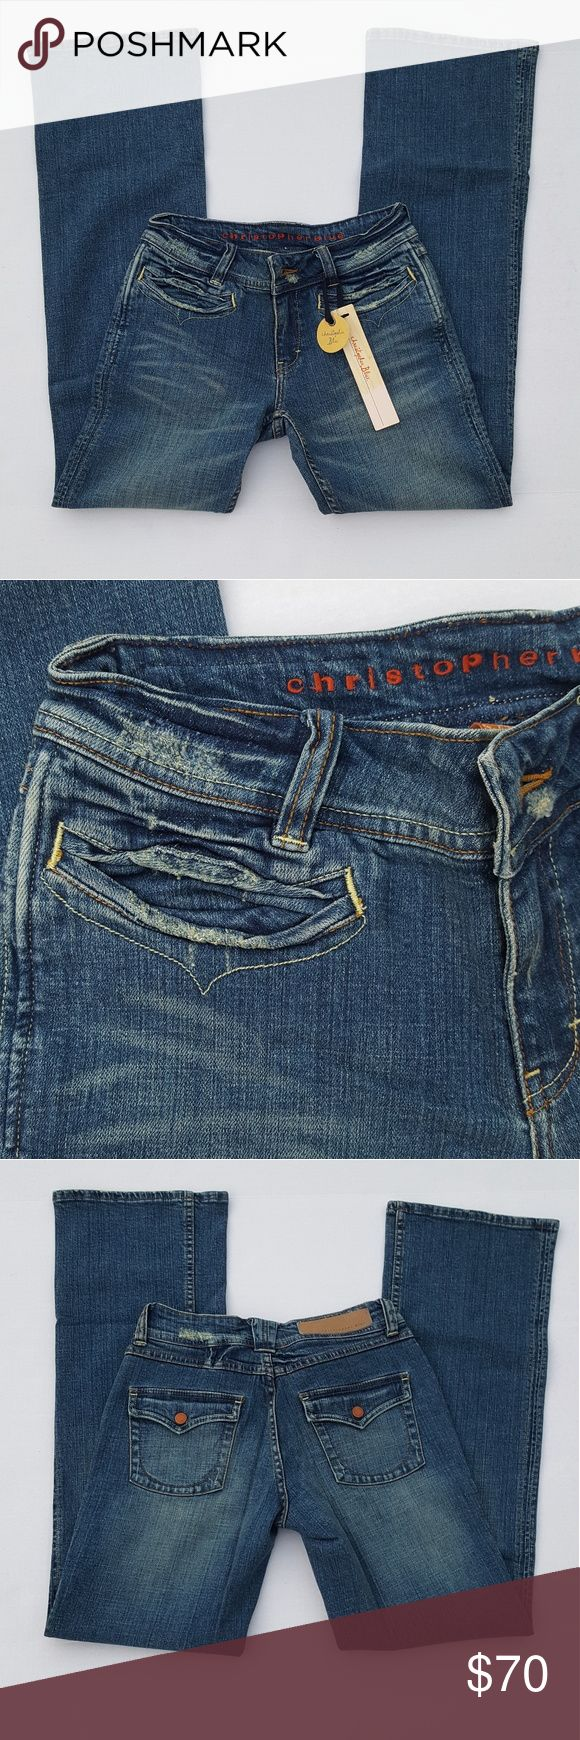 Christopher Blue Chris Lloyd's Daughter jeans NWT bootcut Christopher Blue jeans in size 2. These jeans retail for 150 dollars and are an up and coming popular brand! Hand crafted and dyed. I can get measurements just ask! Christopher Blue Jeans Boot Cut